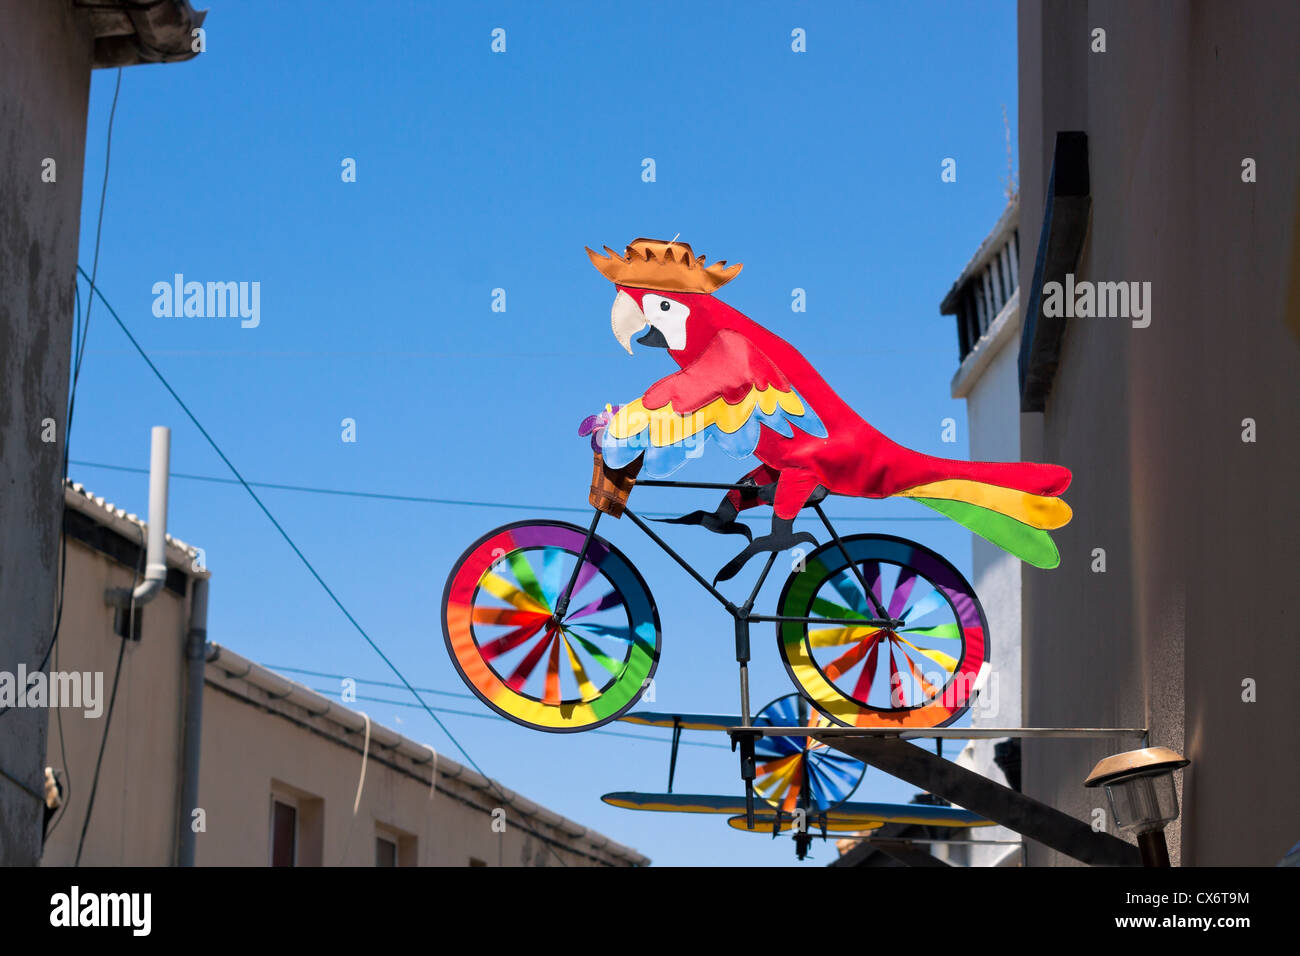 Colourful whirligig, parrot on the bicycle, house exterior decoration. - Stock Image